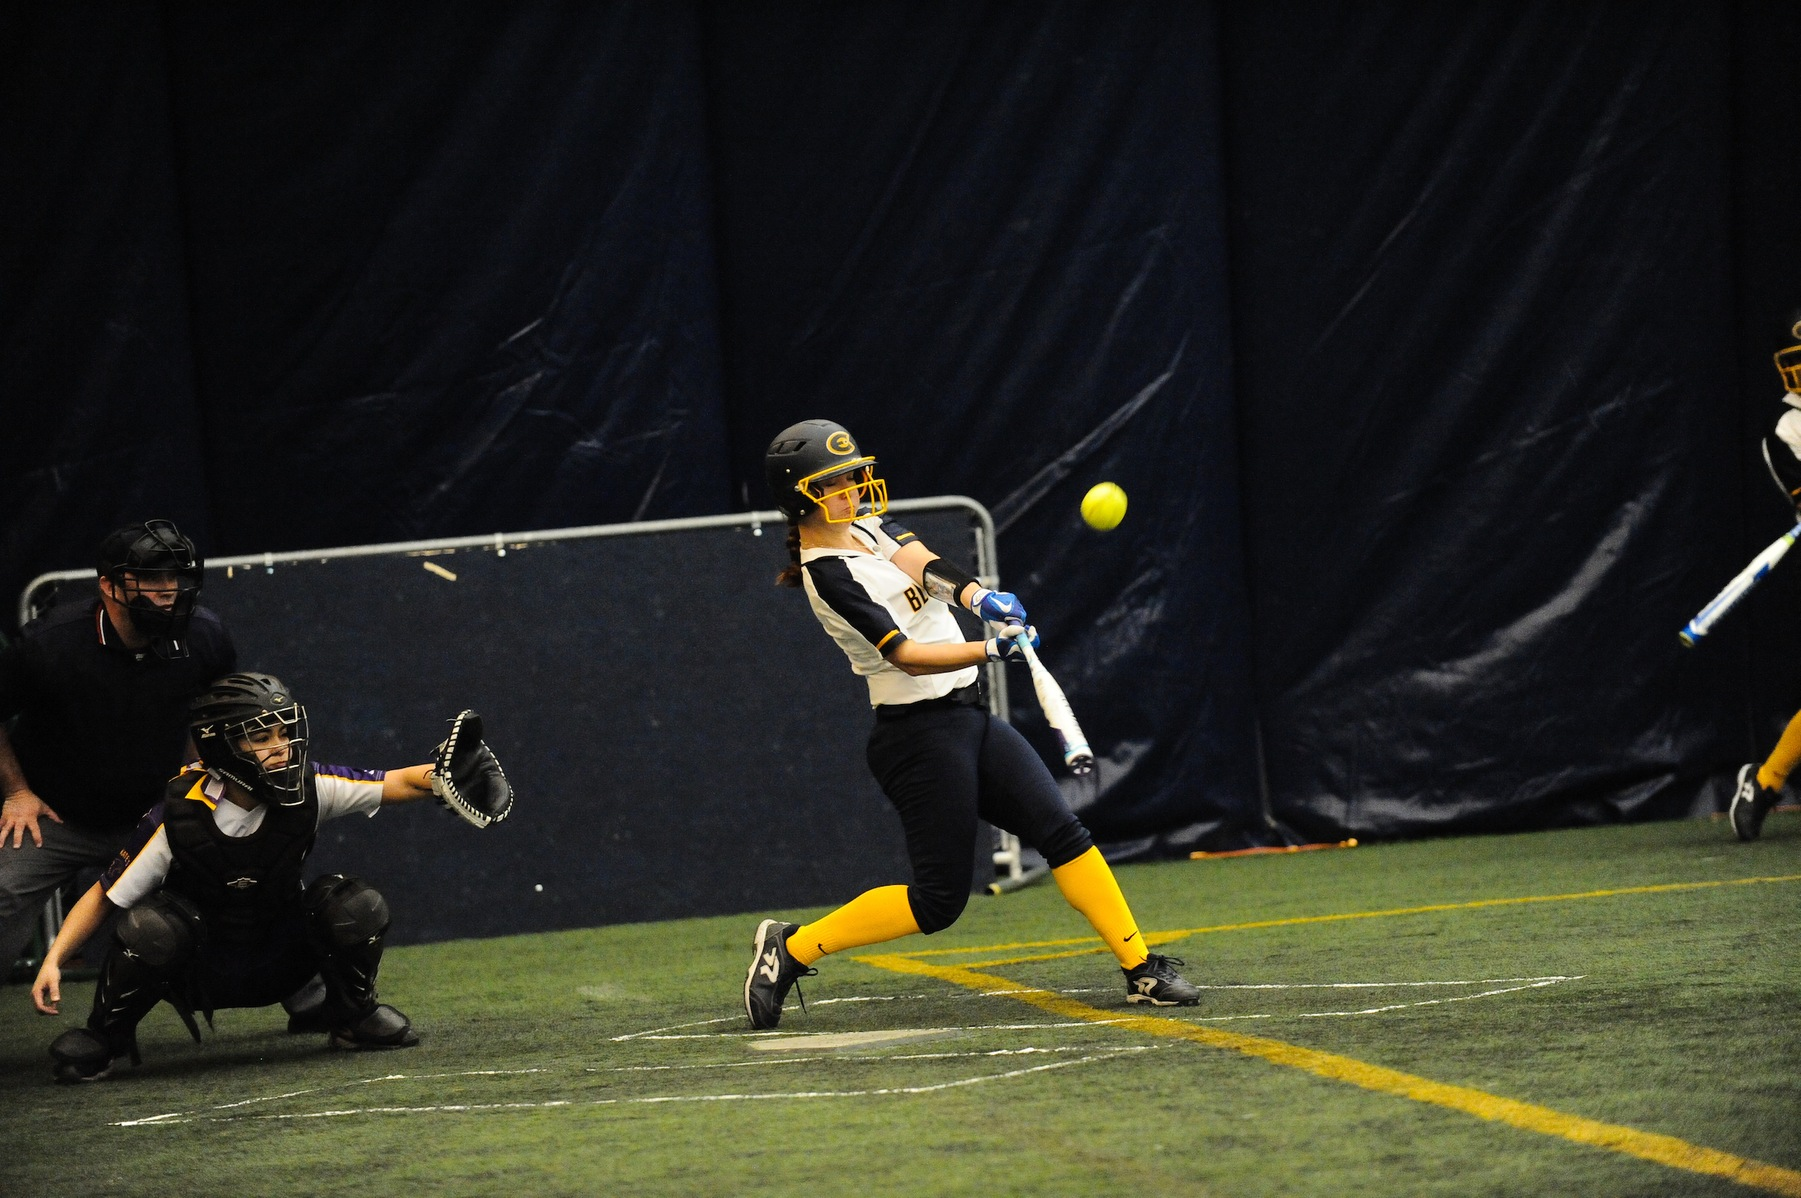 Softball sweeps the day, defeating Chicago and Carthage